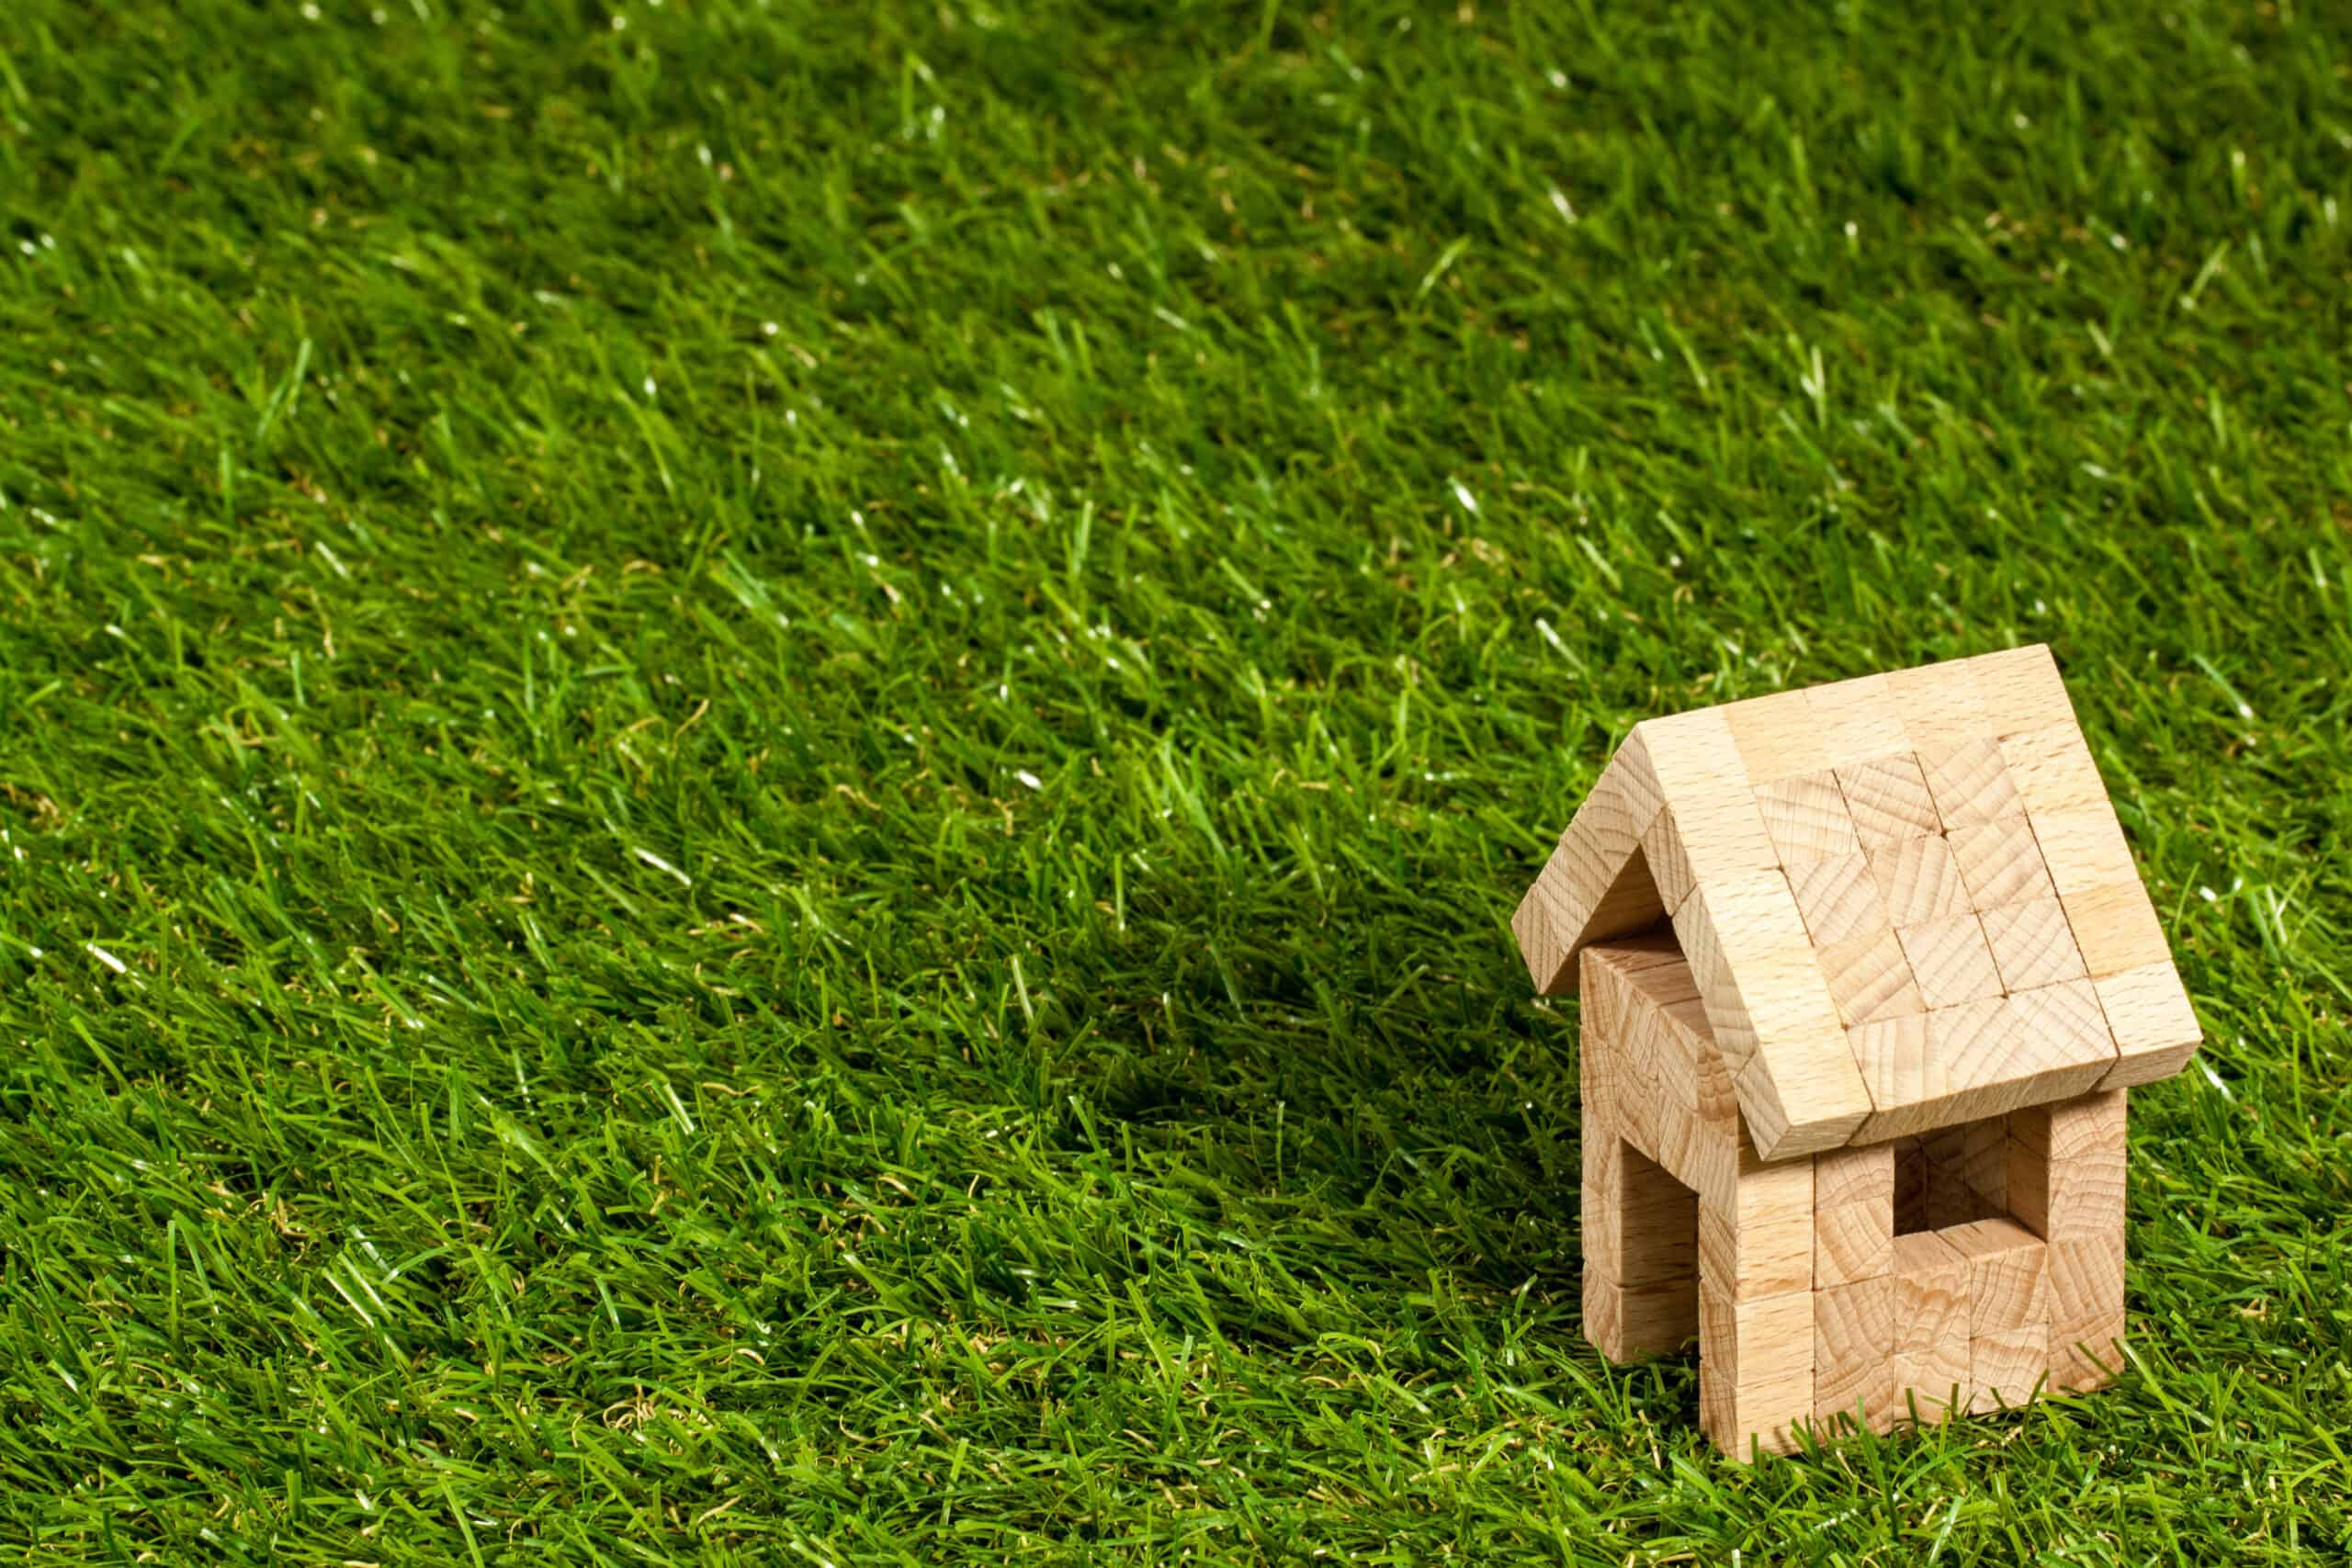 Mortgages and Deeds When it Comes to Cohabitation